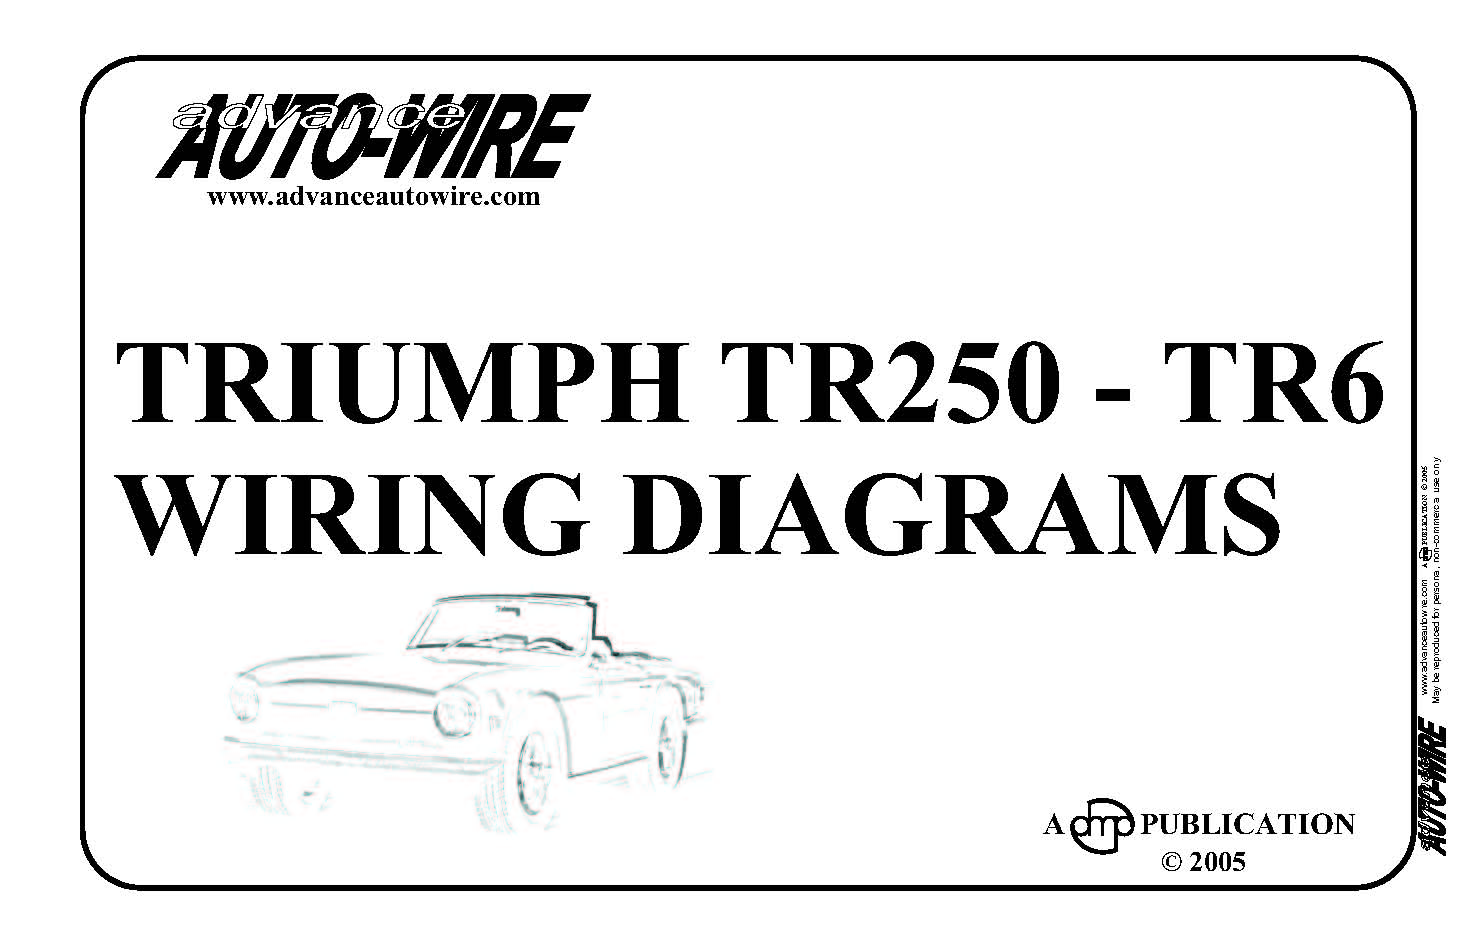 1973 Triumph Tr6 Wiring Diagram Guide And Troubleshooting Of Color Only Mg Midget For 1972 1971